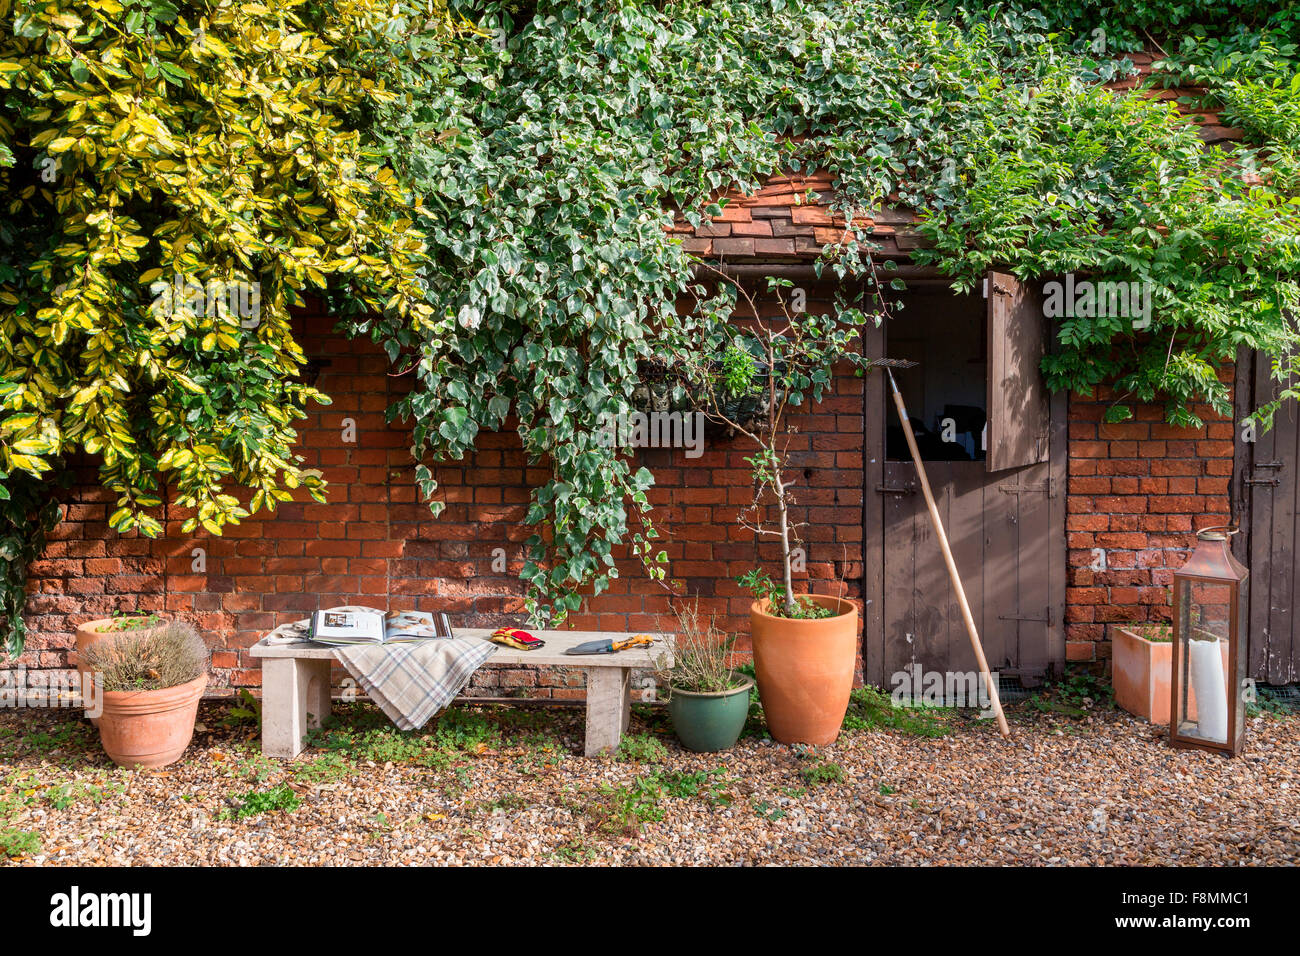 Grade II Listed Country Lodge in Weybridge. The old stable building at a historic house, with plant pots and a hurricane - Stock Image